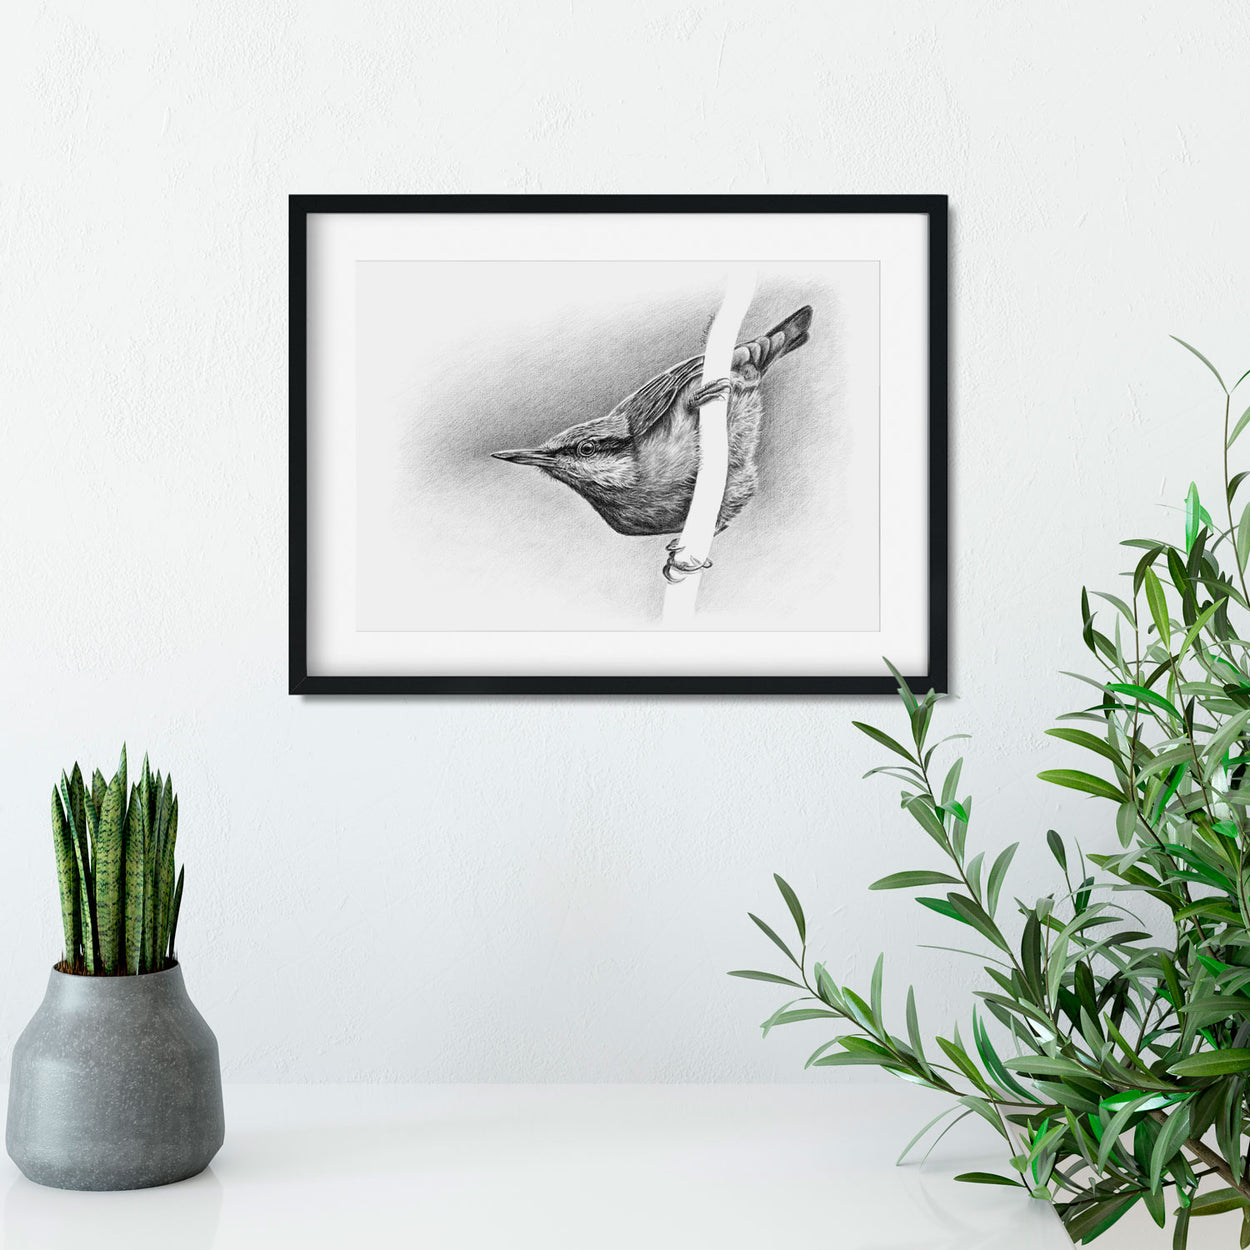 Nuthatch Drawing Frame on Wall - The Thriving Wild